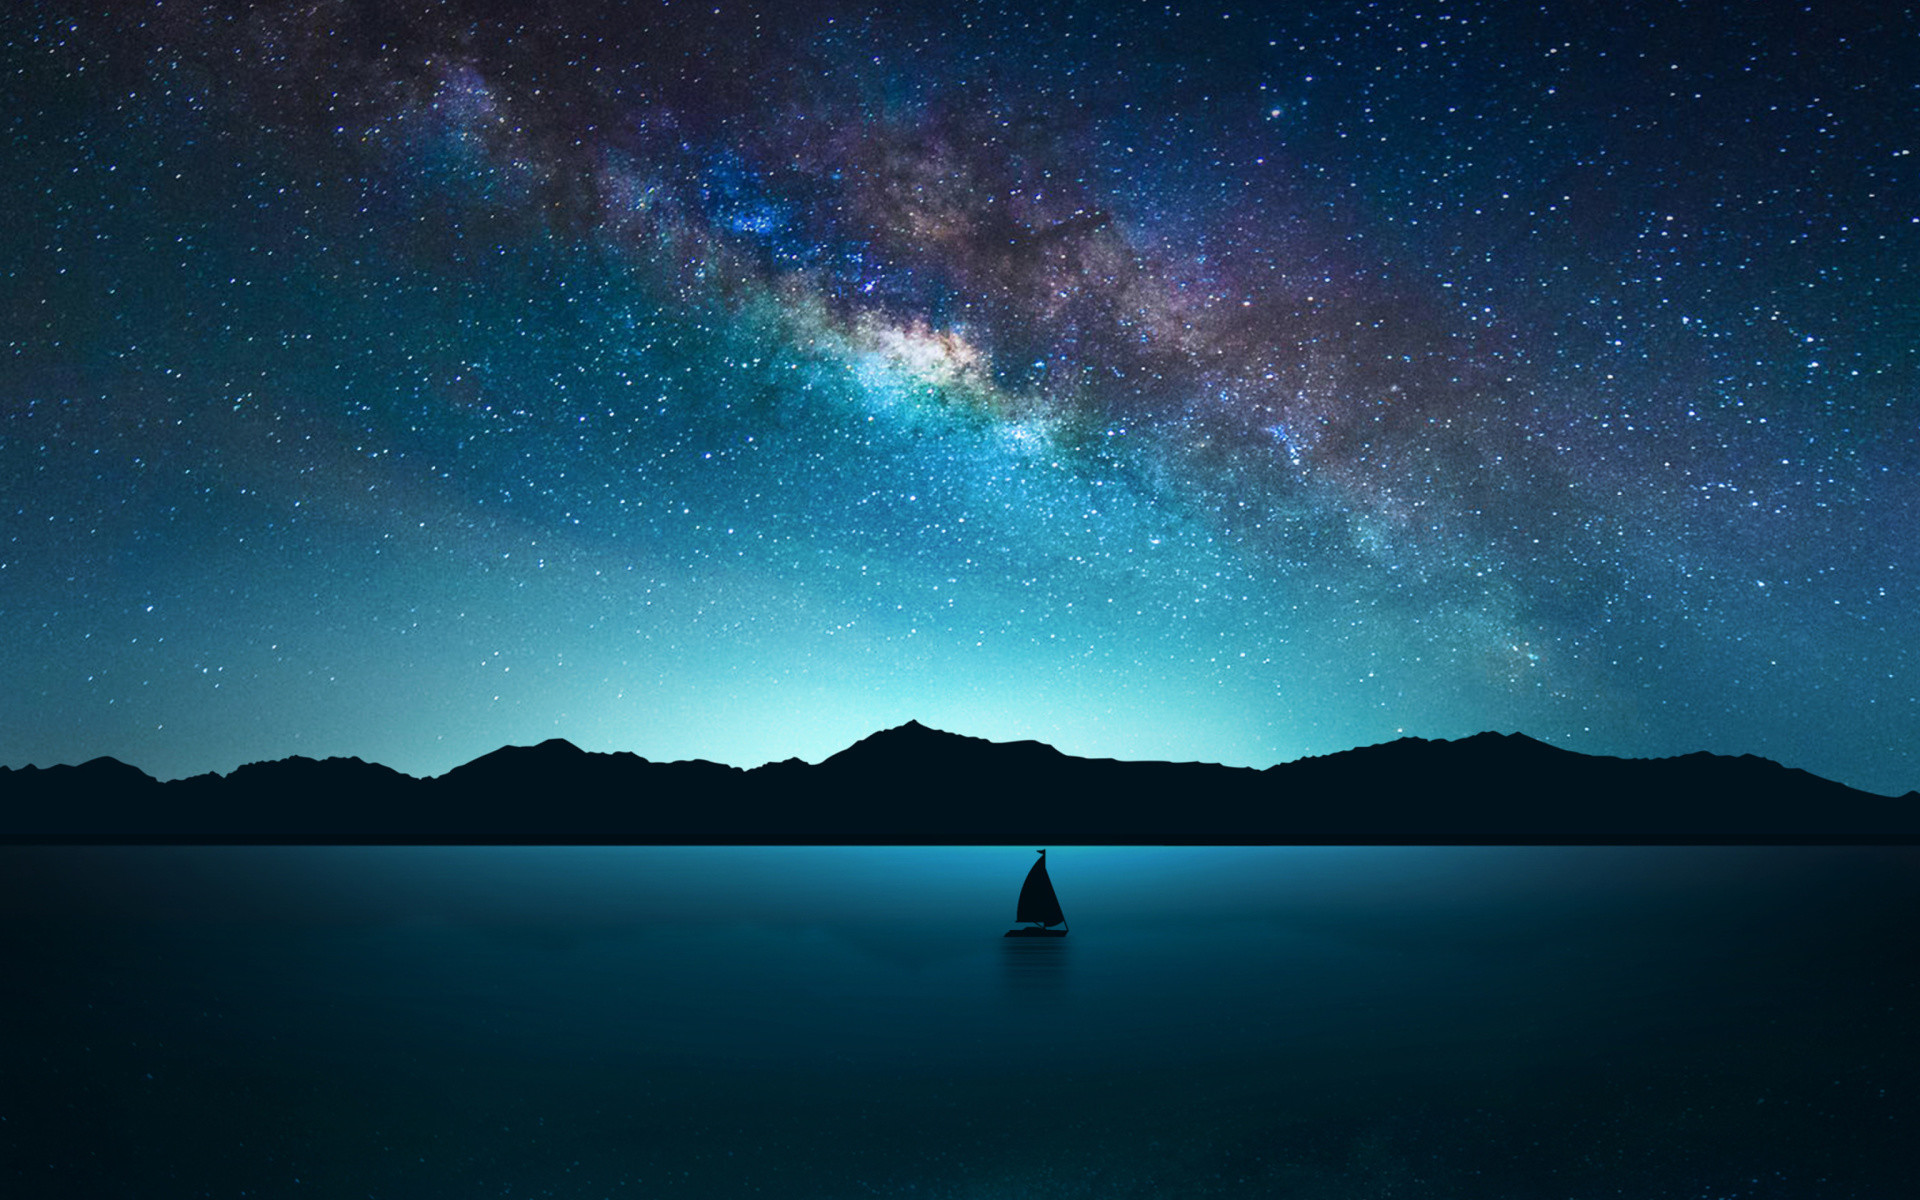 … Night Sky Wallpaper Hd High resolution starry night sky background free  powerpoint background